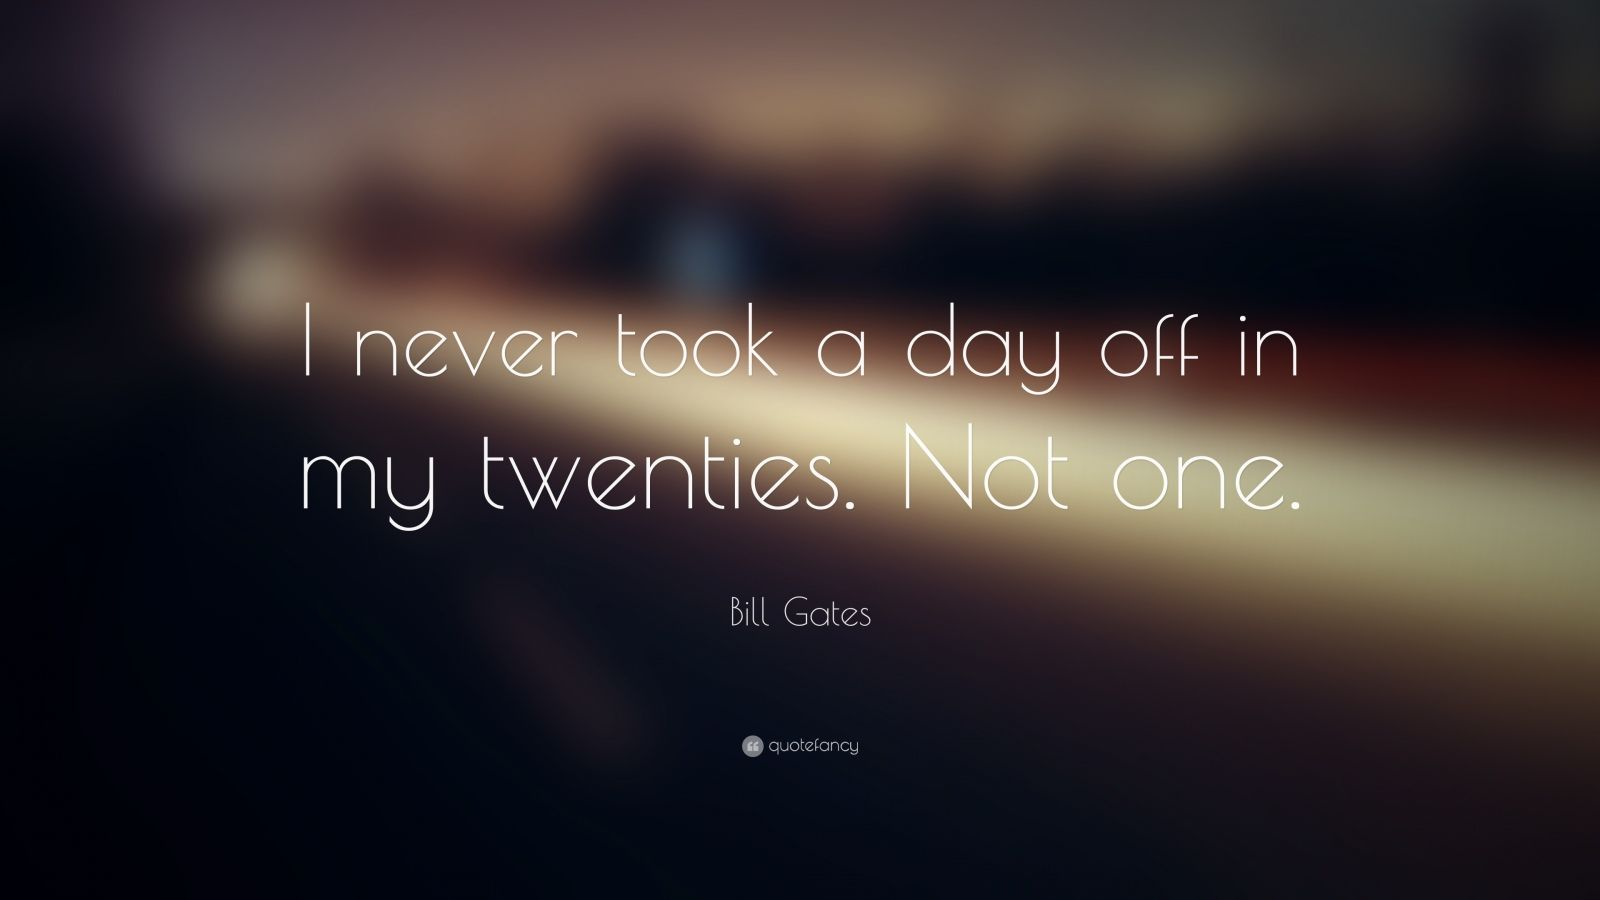 Warren Buffett Quotes Iphone Wallpaper Bill Gates Quote I Never Took A Day Off In My Twenties